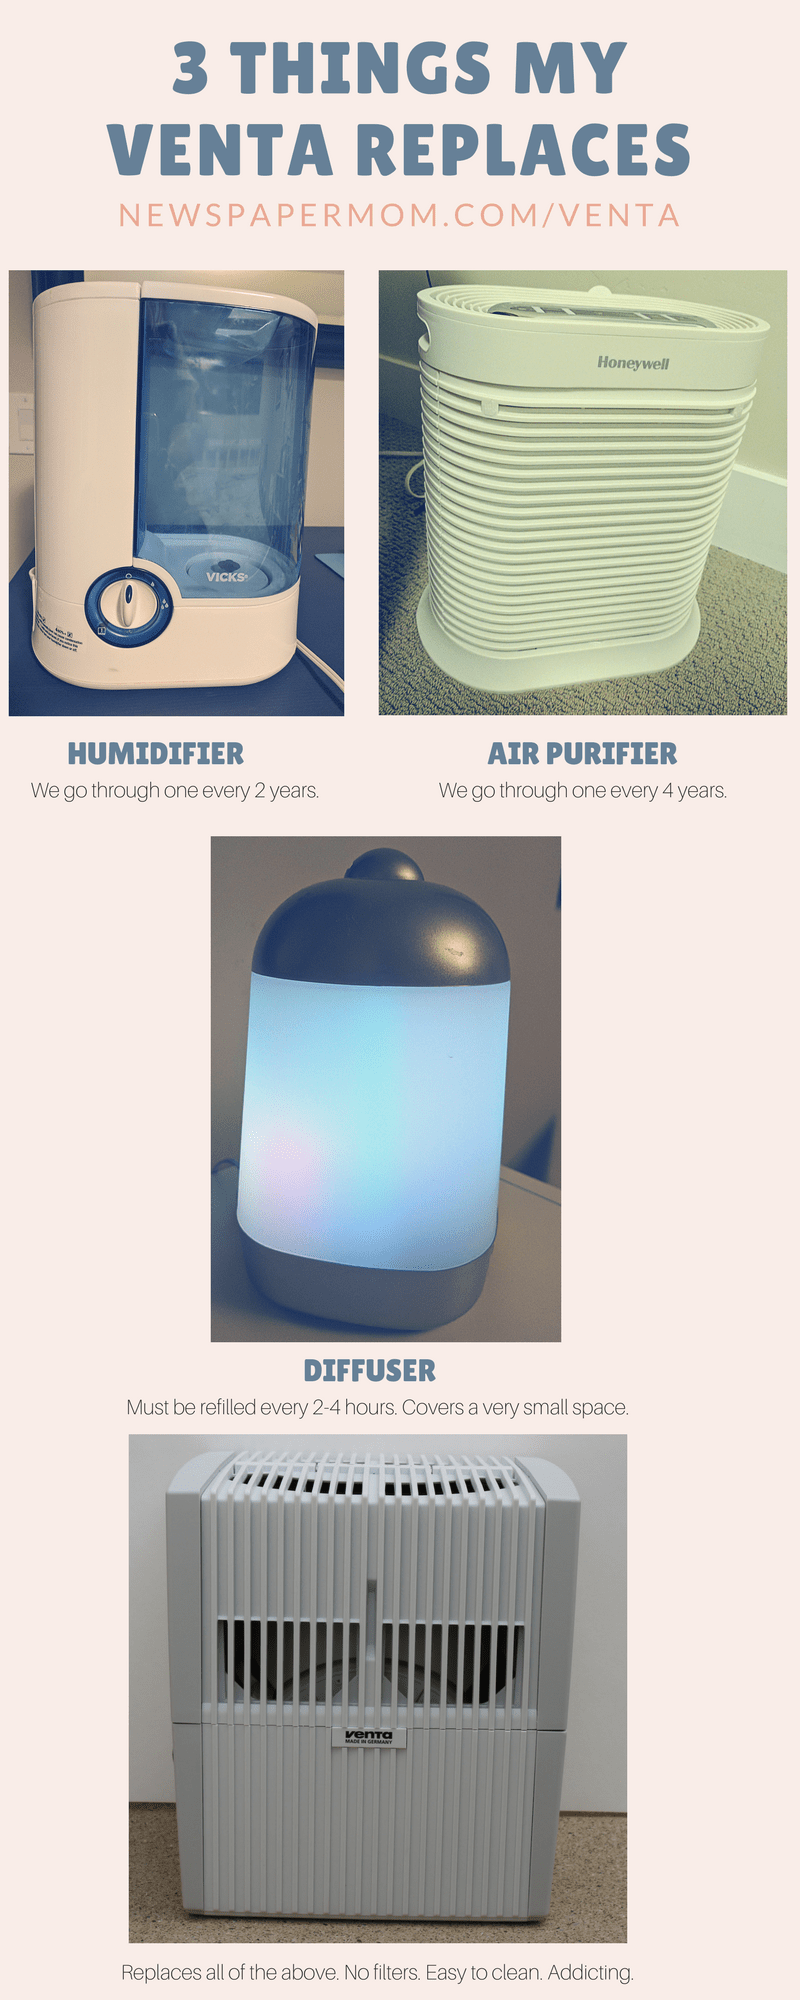 Venta: Humidifier, Air Purifier & Diffuser in One!!